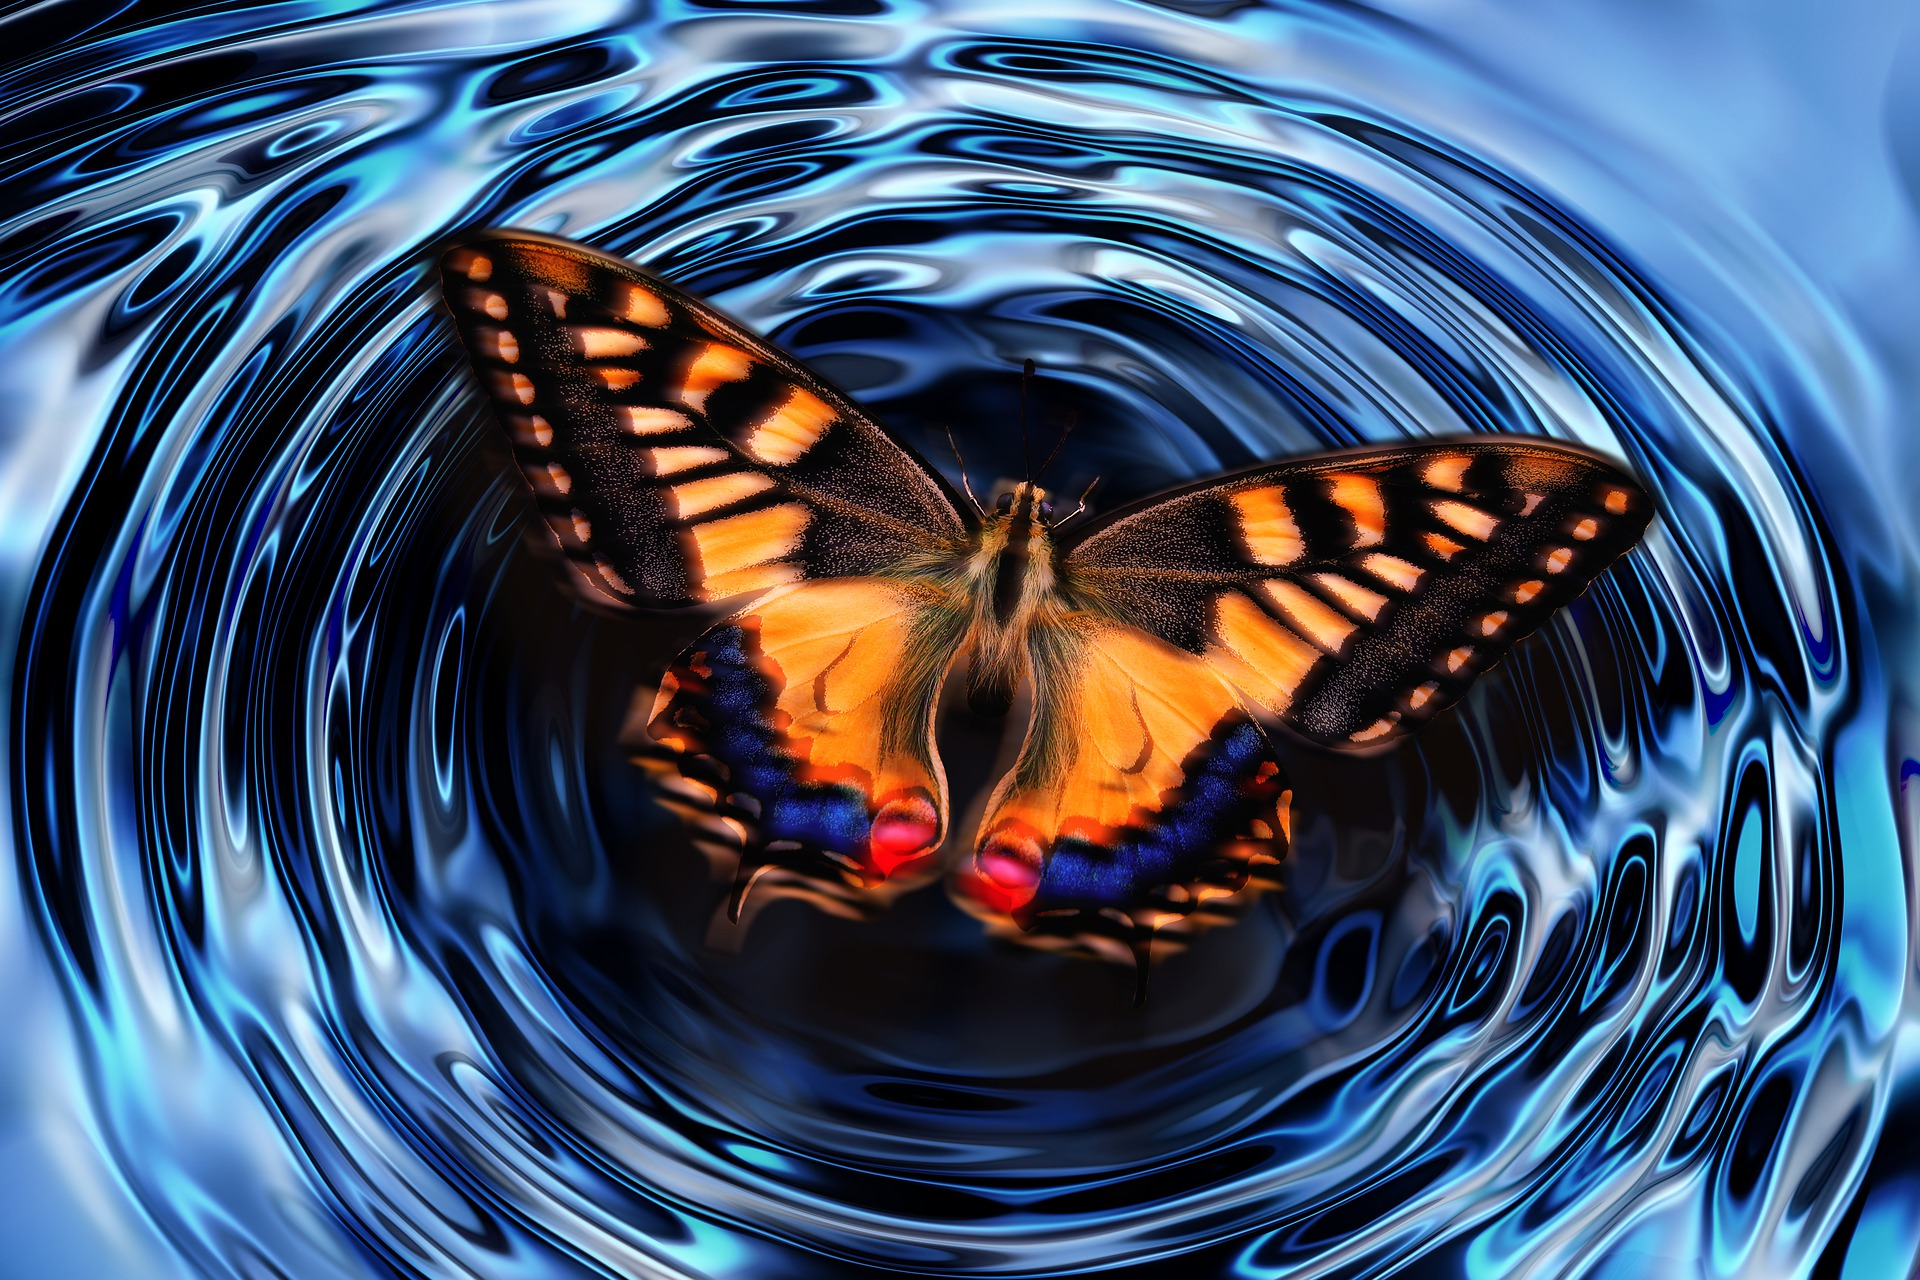 Butterfly making waves on the water.